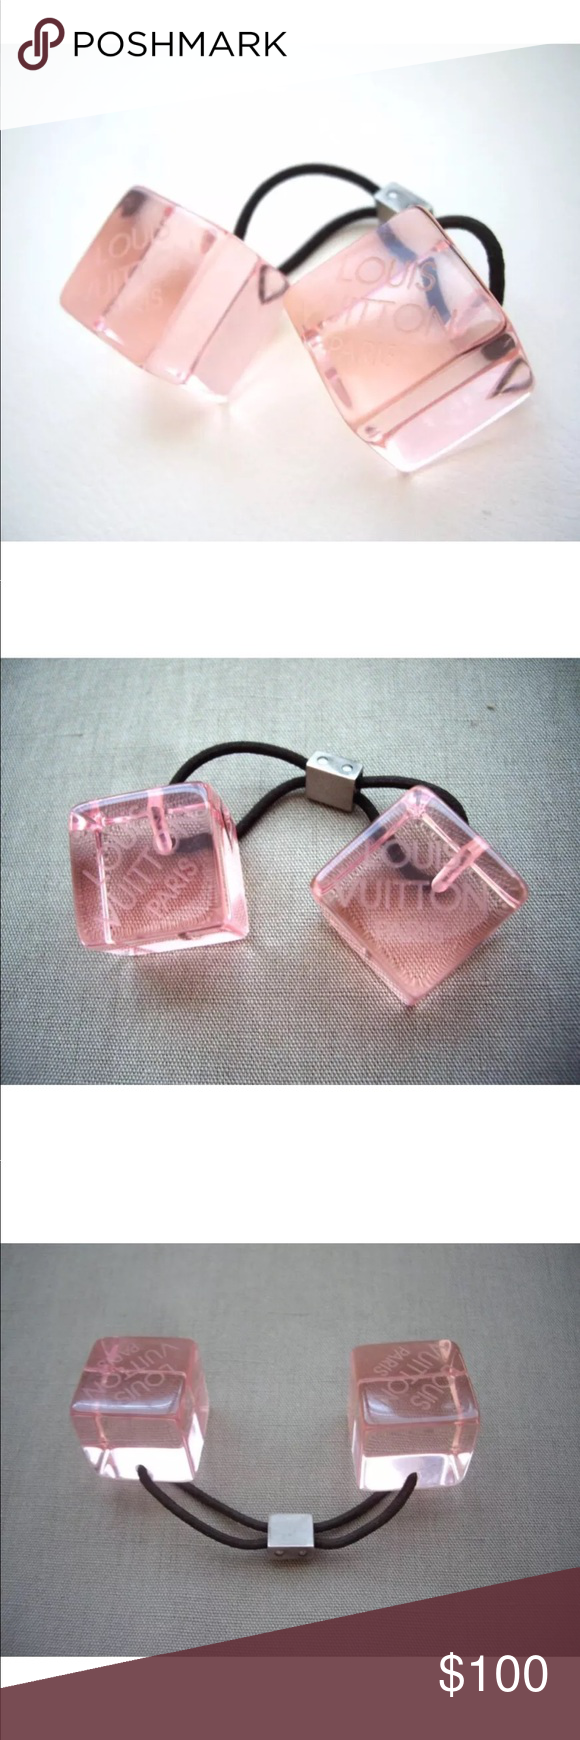 Louis Vuitton ponytail holder Authentic Louis Vuitton ponytail holder.  Please see picture for additional details 7115685c3e6